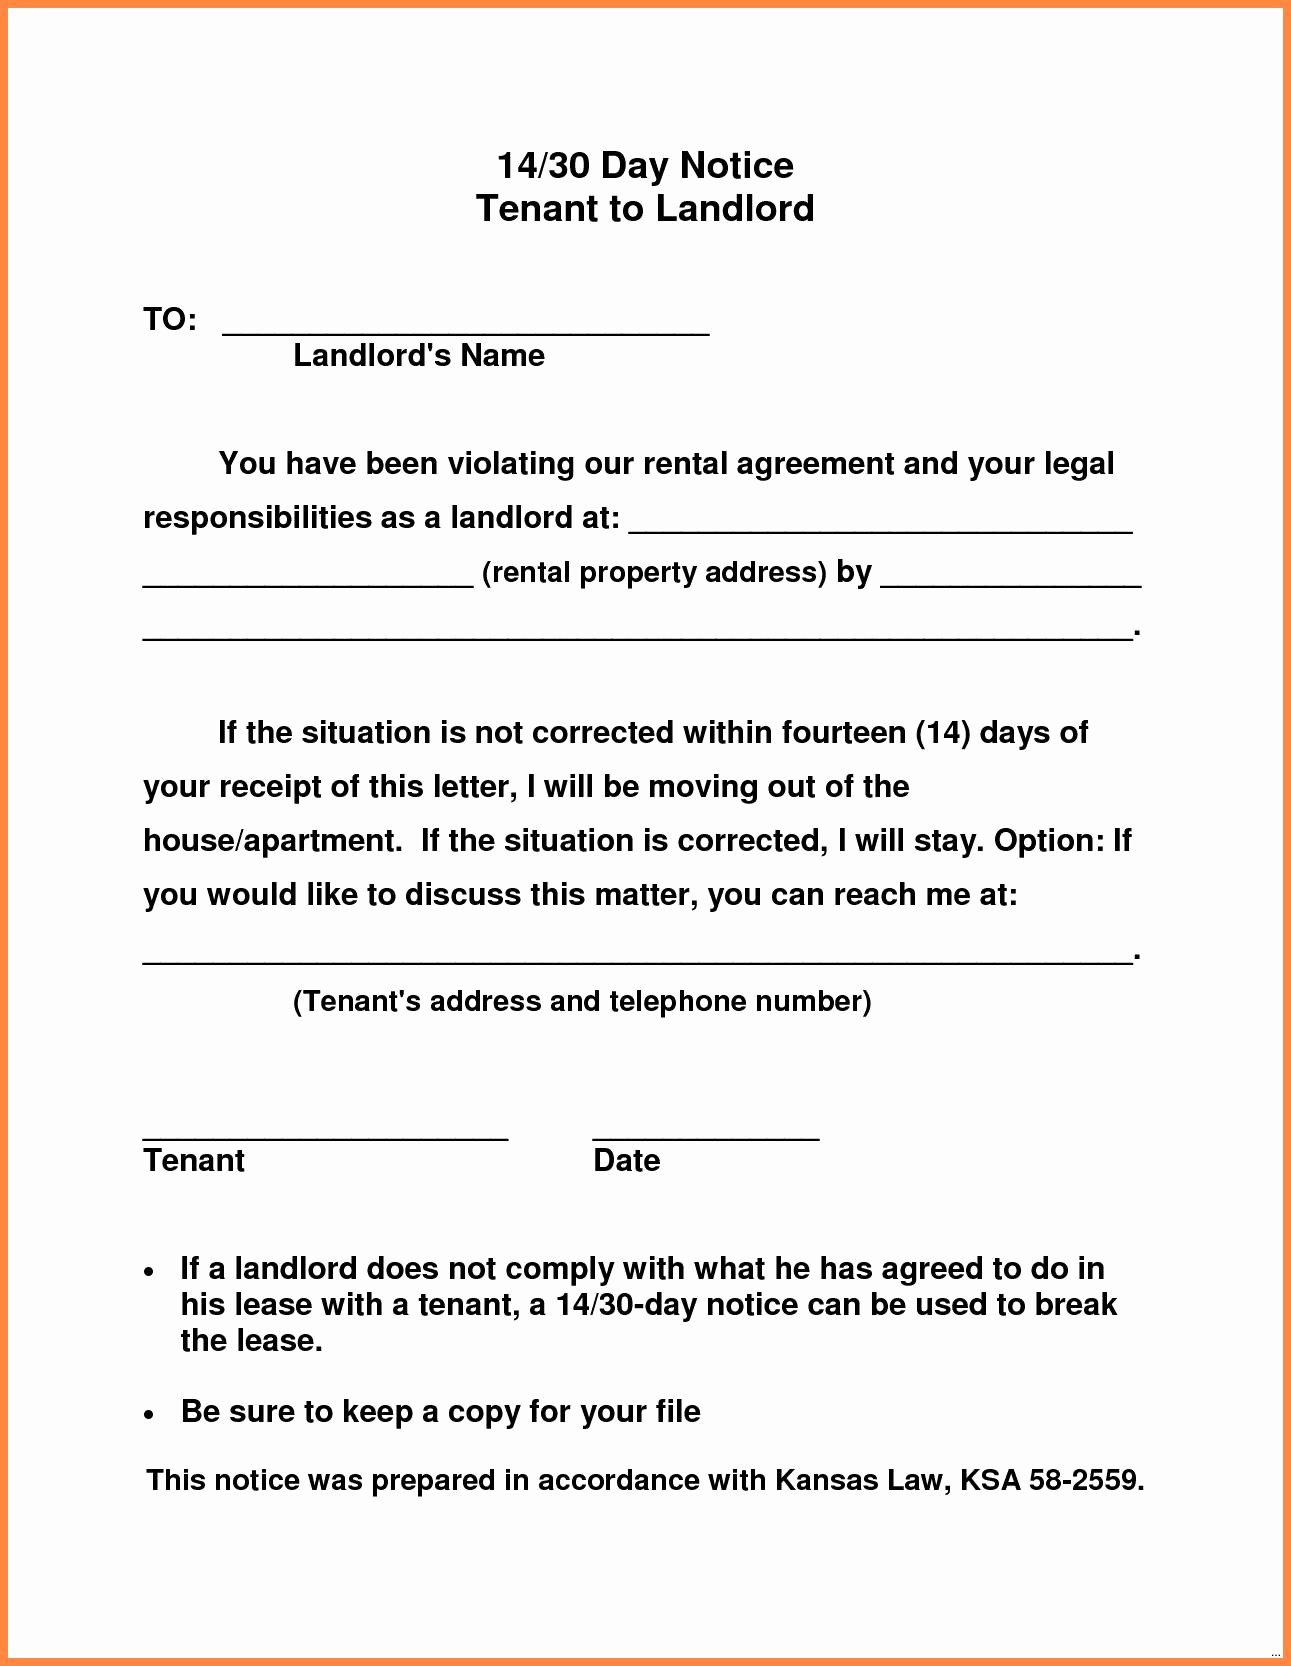 Sample Landlord Letters to Tenants Elegant Landlord Notice Letter to Tenant Template Examples